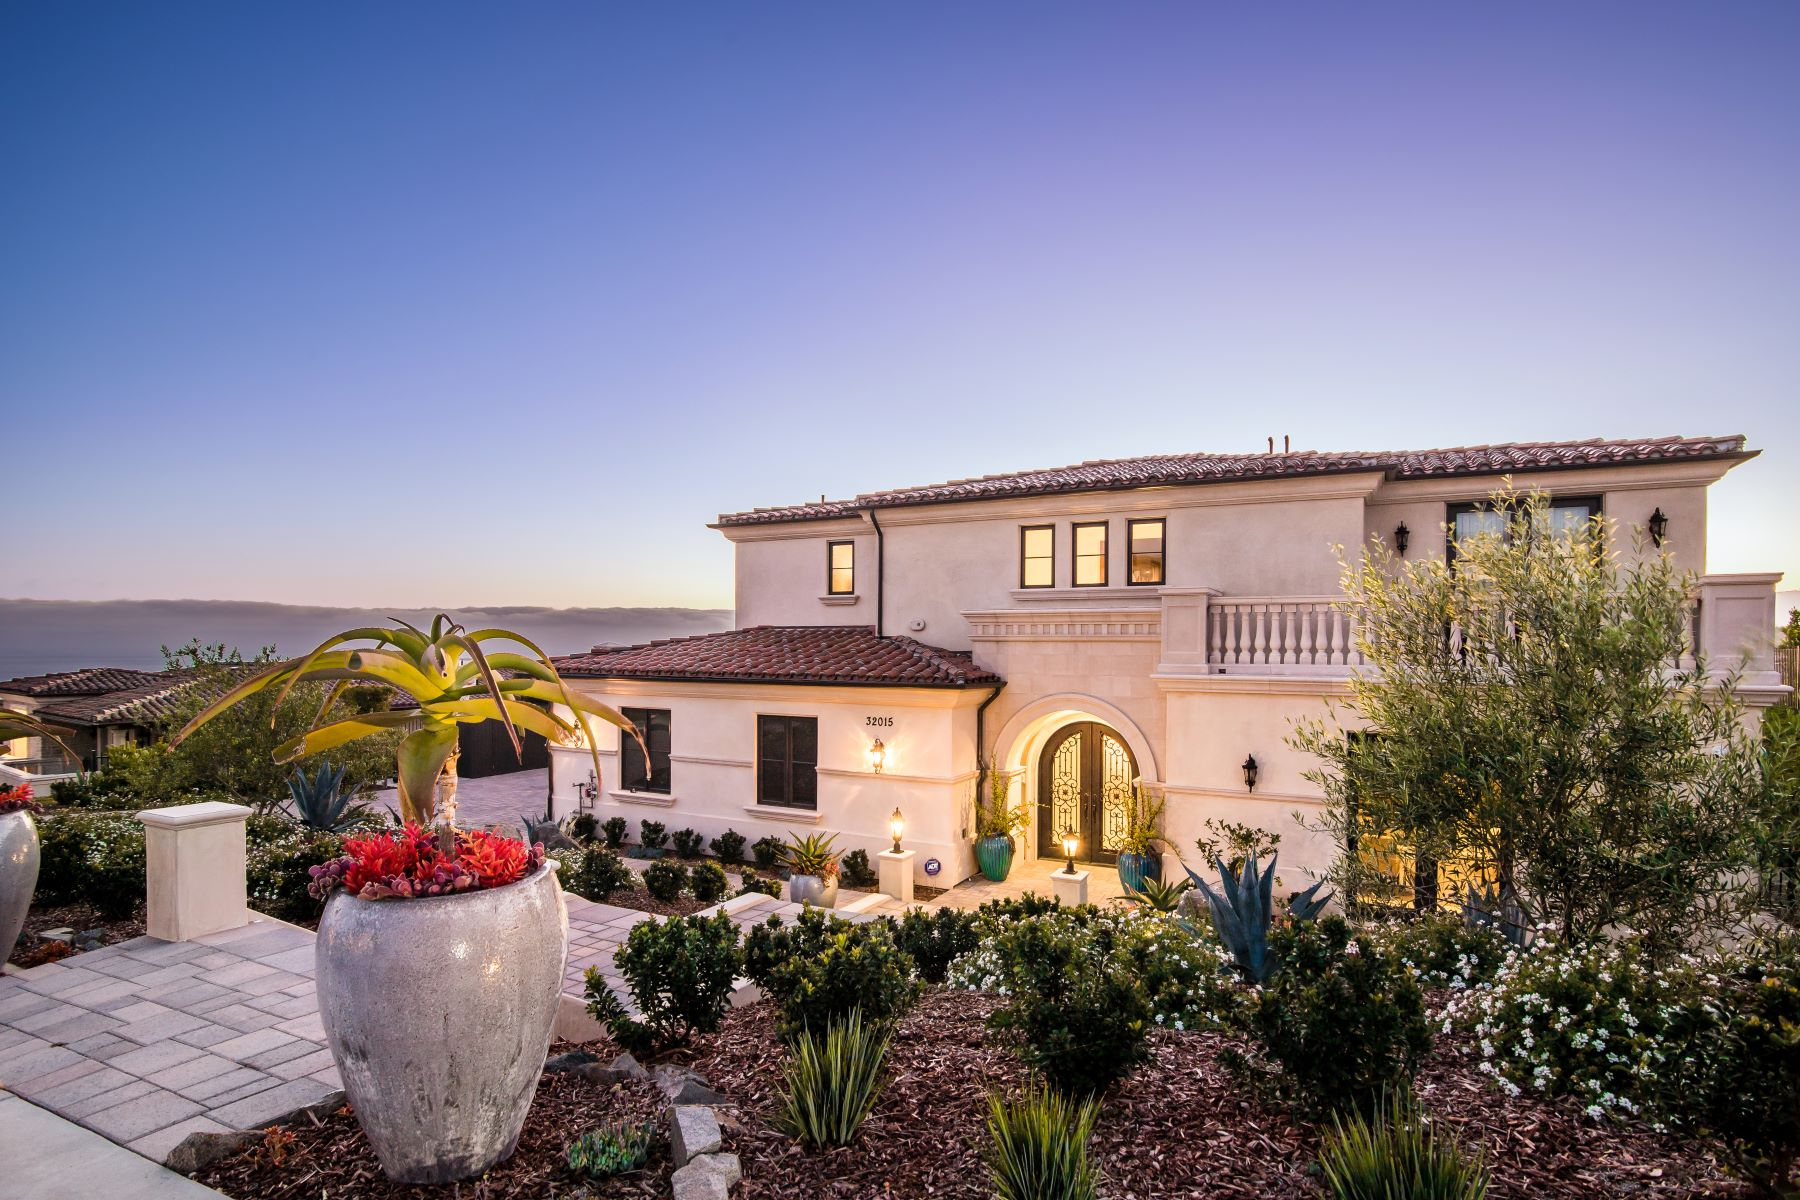 Single Family Homes for Sale at 32015 Cape Point Drive, Rancho Palos Verdes, CA 90275 32015 Cape Point Drive Rancho Palos Verdes, California 90275 United States